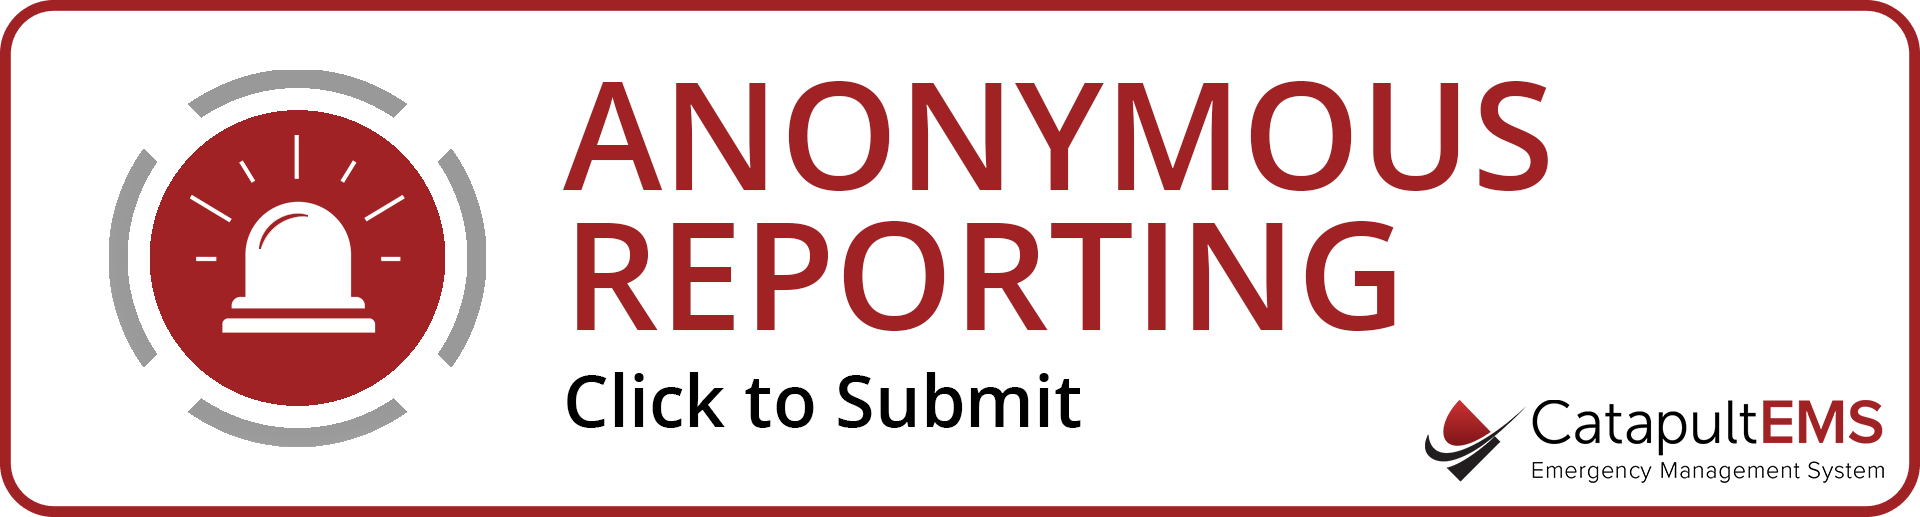 Anonymous Reporting. Click to Submit